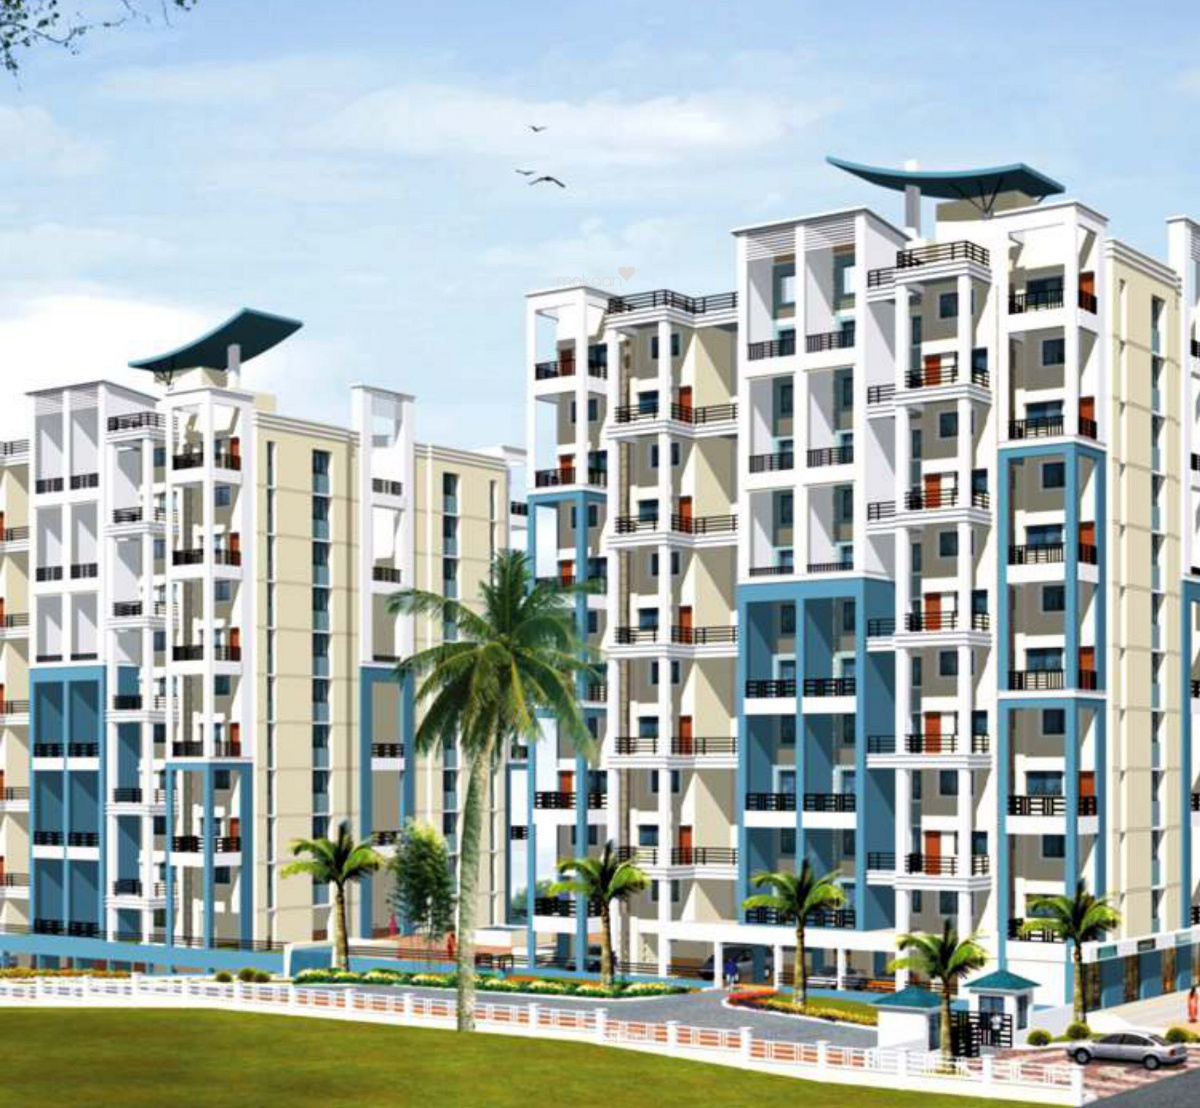 1200 sq ft 2BHK 2BHK+2T (1,200 sq ft) Property By Raviraj Real Estate In Crystal Garden, Baner